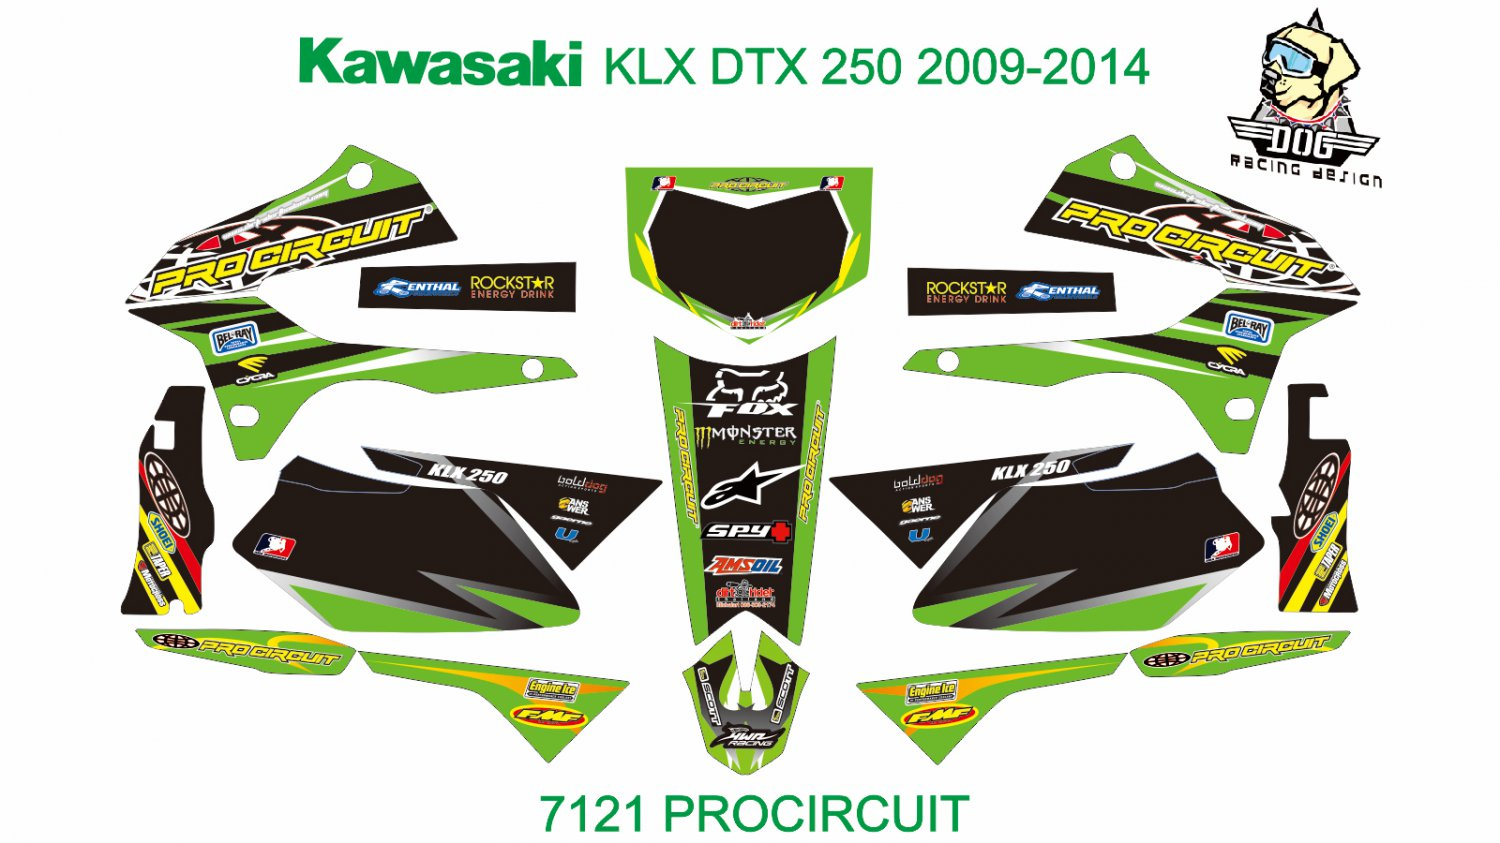 KAWASAKI KLX DTX 250 2009-2014 GRAPHIC DECAL KIT CODE.7121